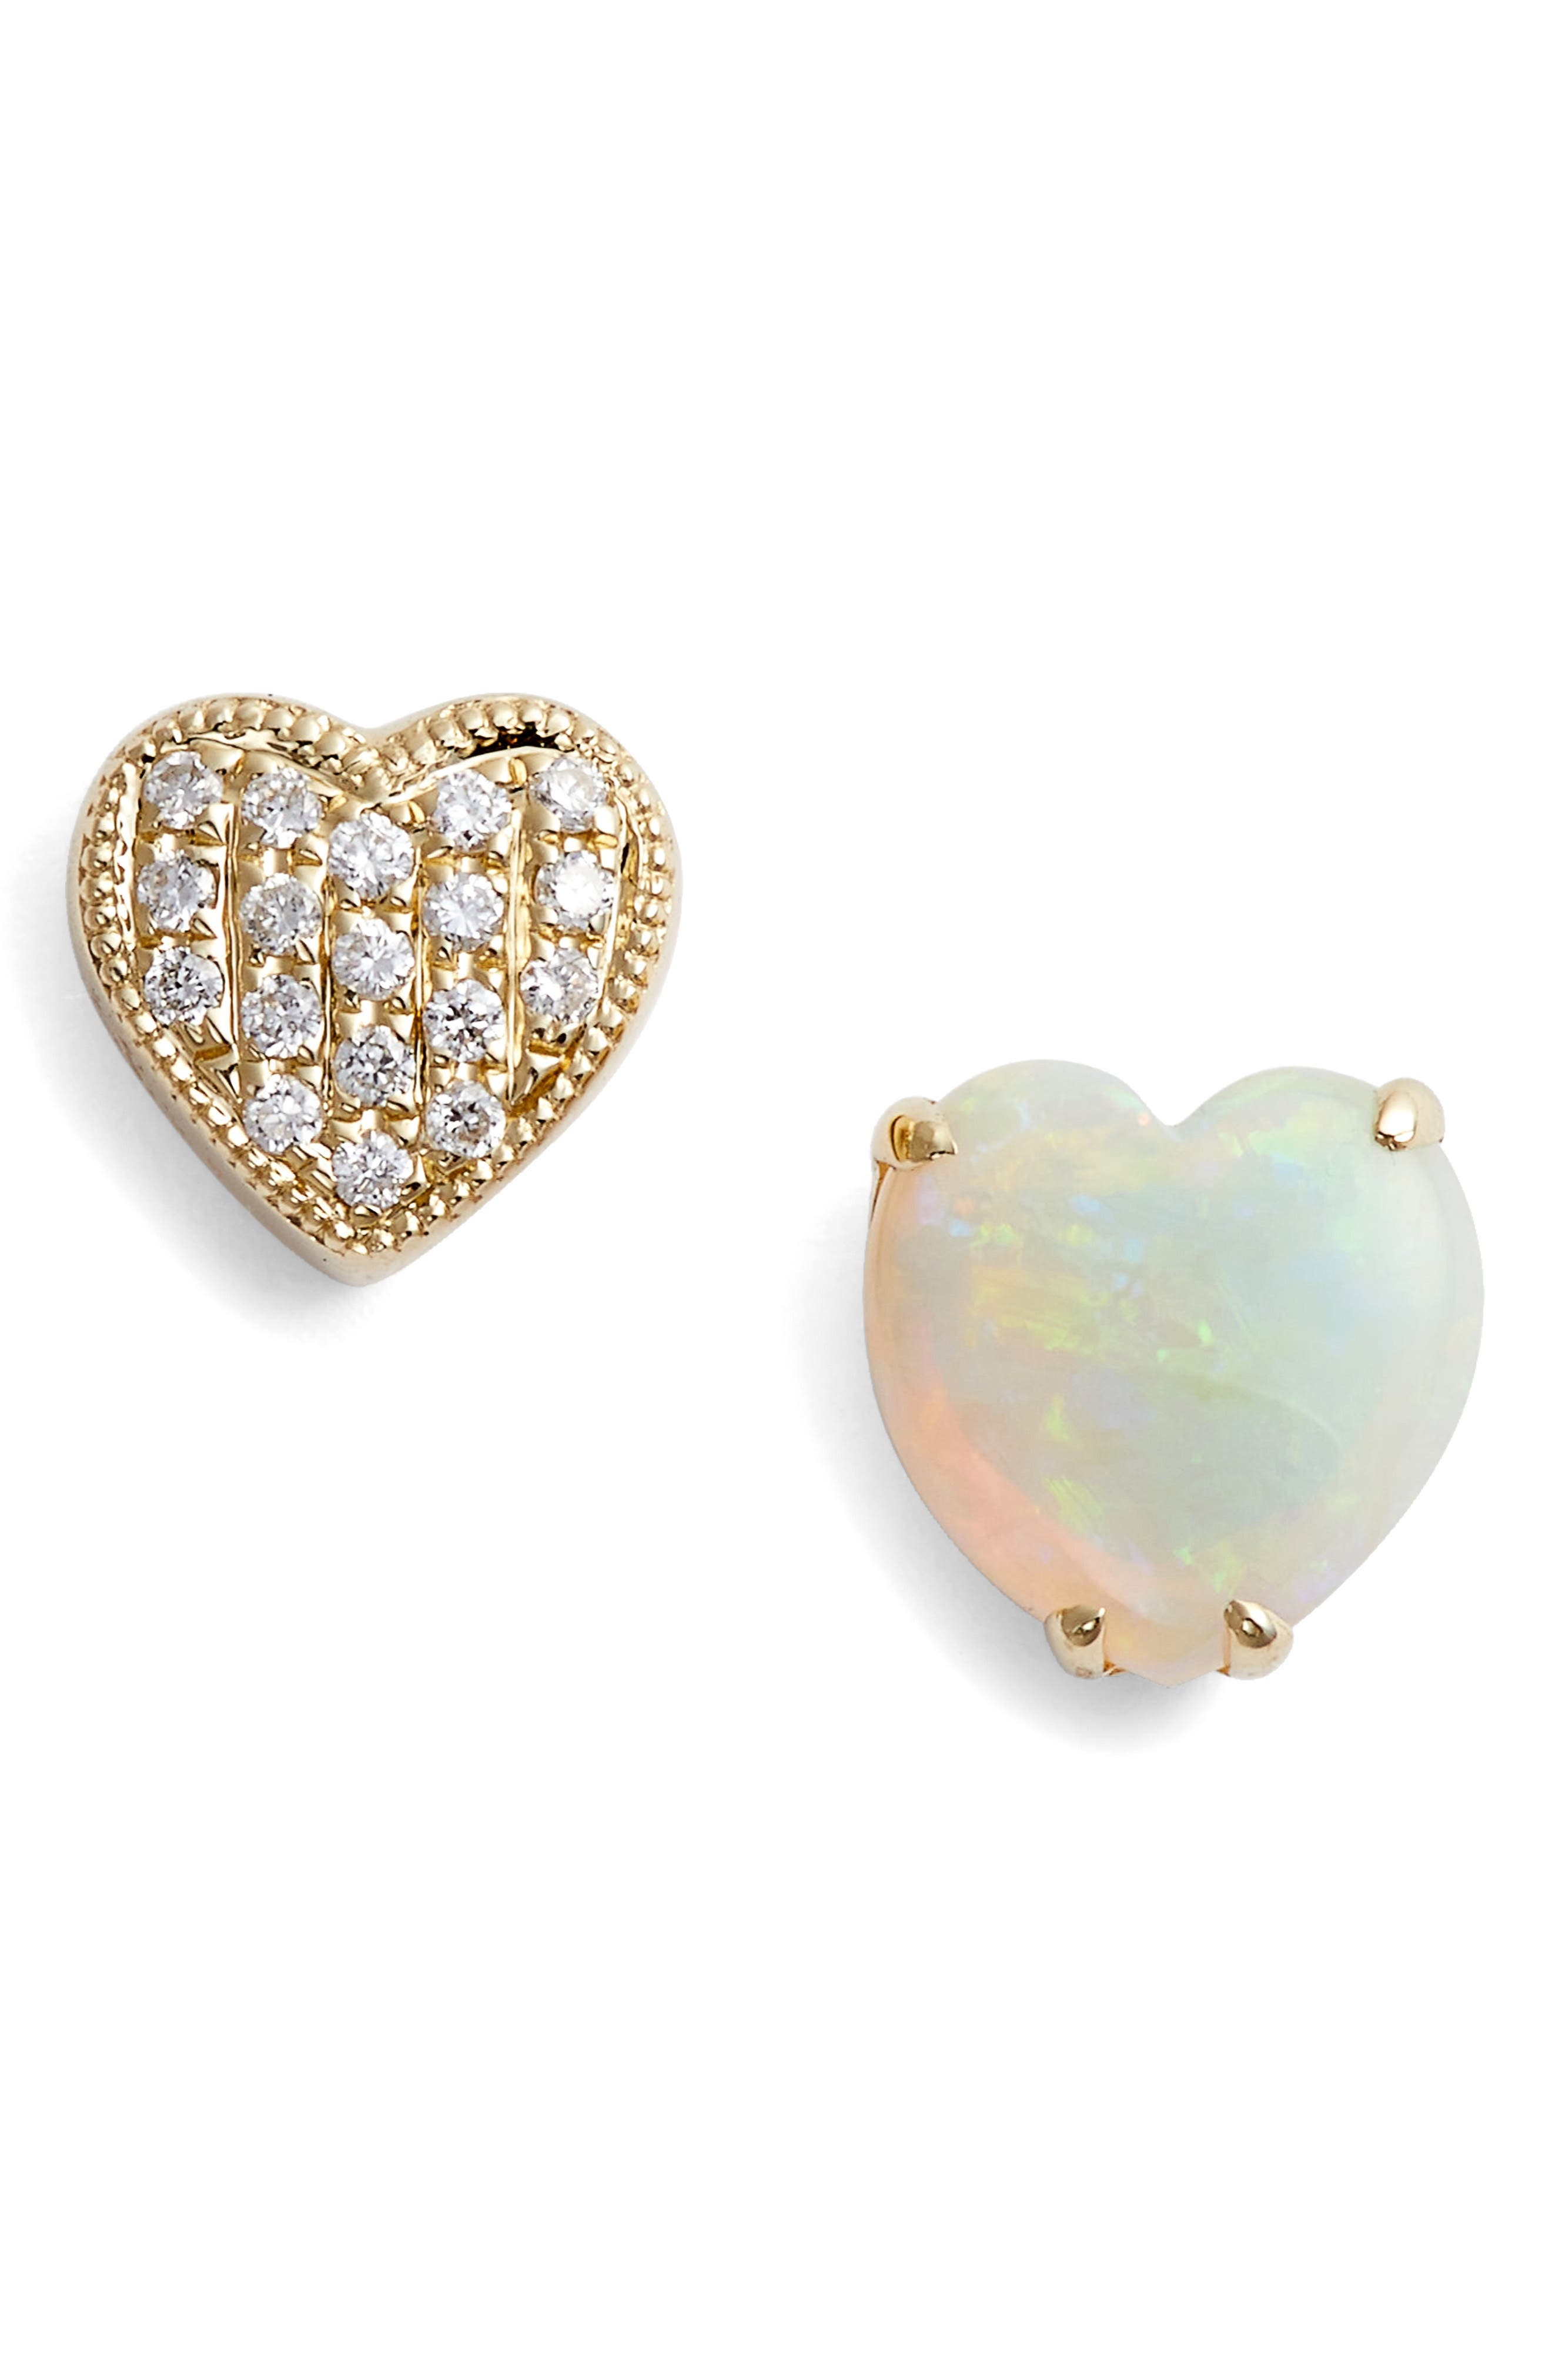 Dana Rebecca Designs Diamond & Semiprecious Stone Stud Earrings